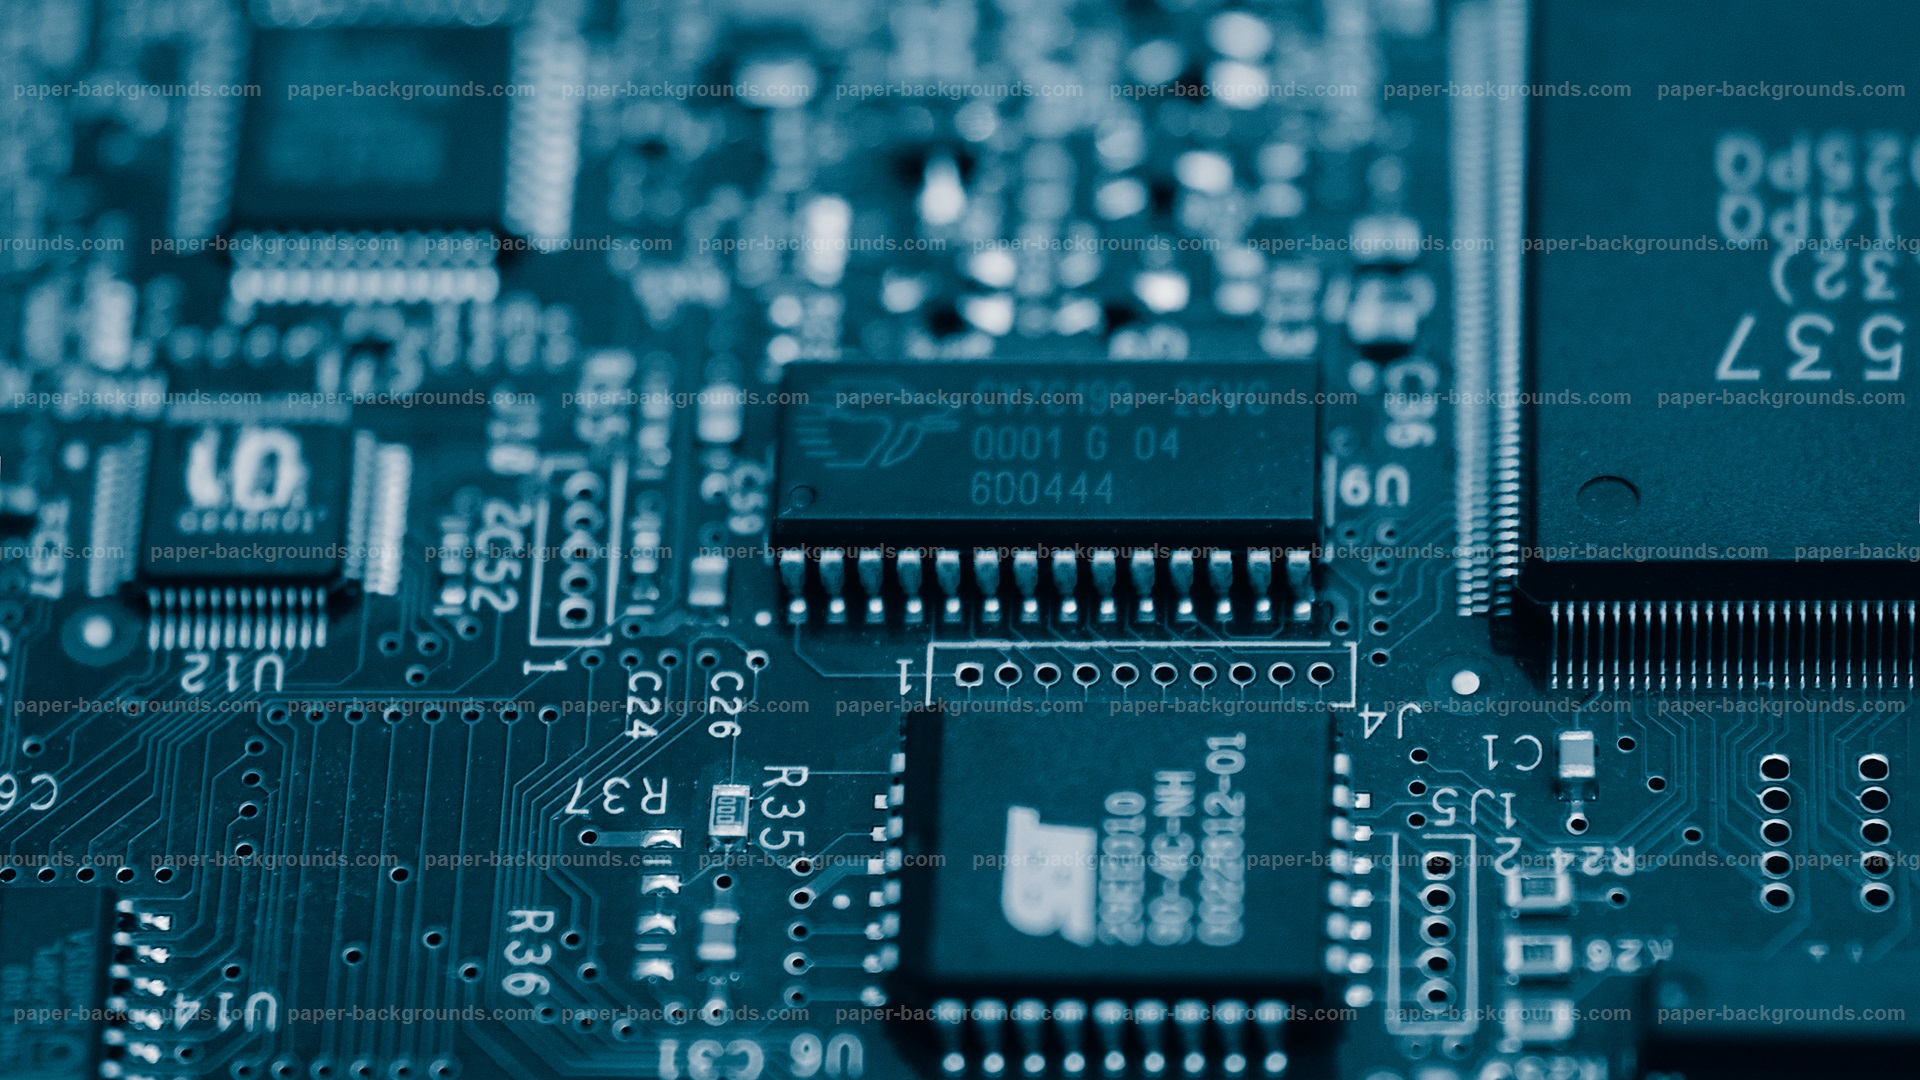 download Paper Backgrounds Blue Electronic Circuits 1920x1080